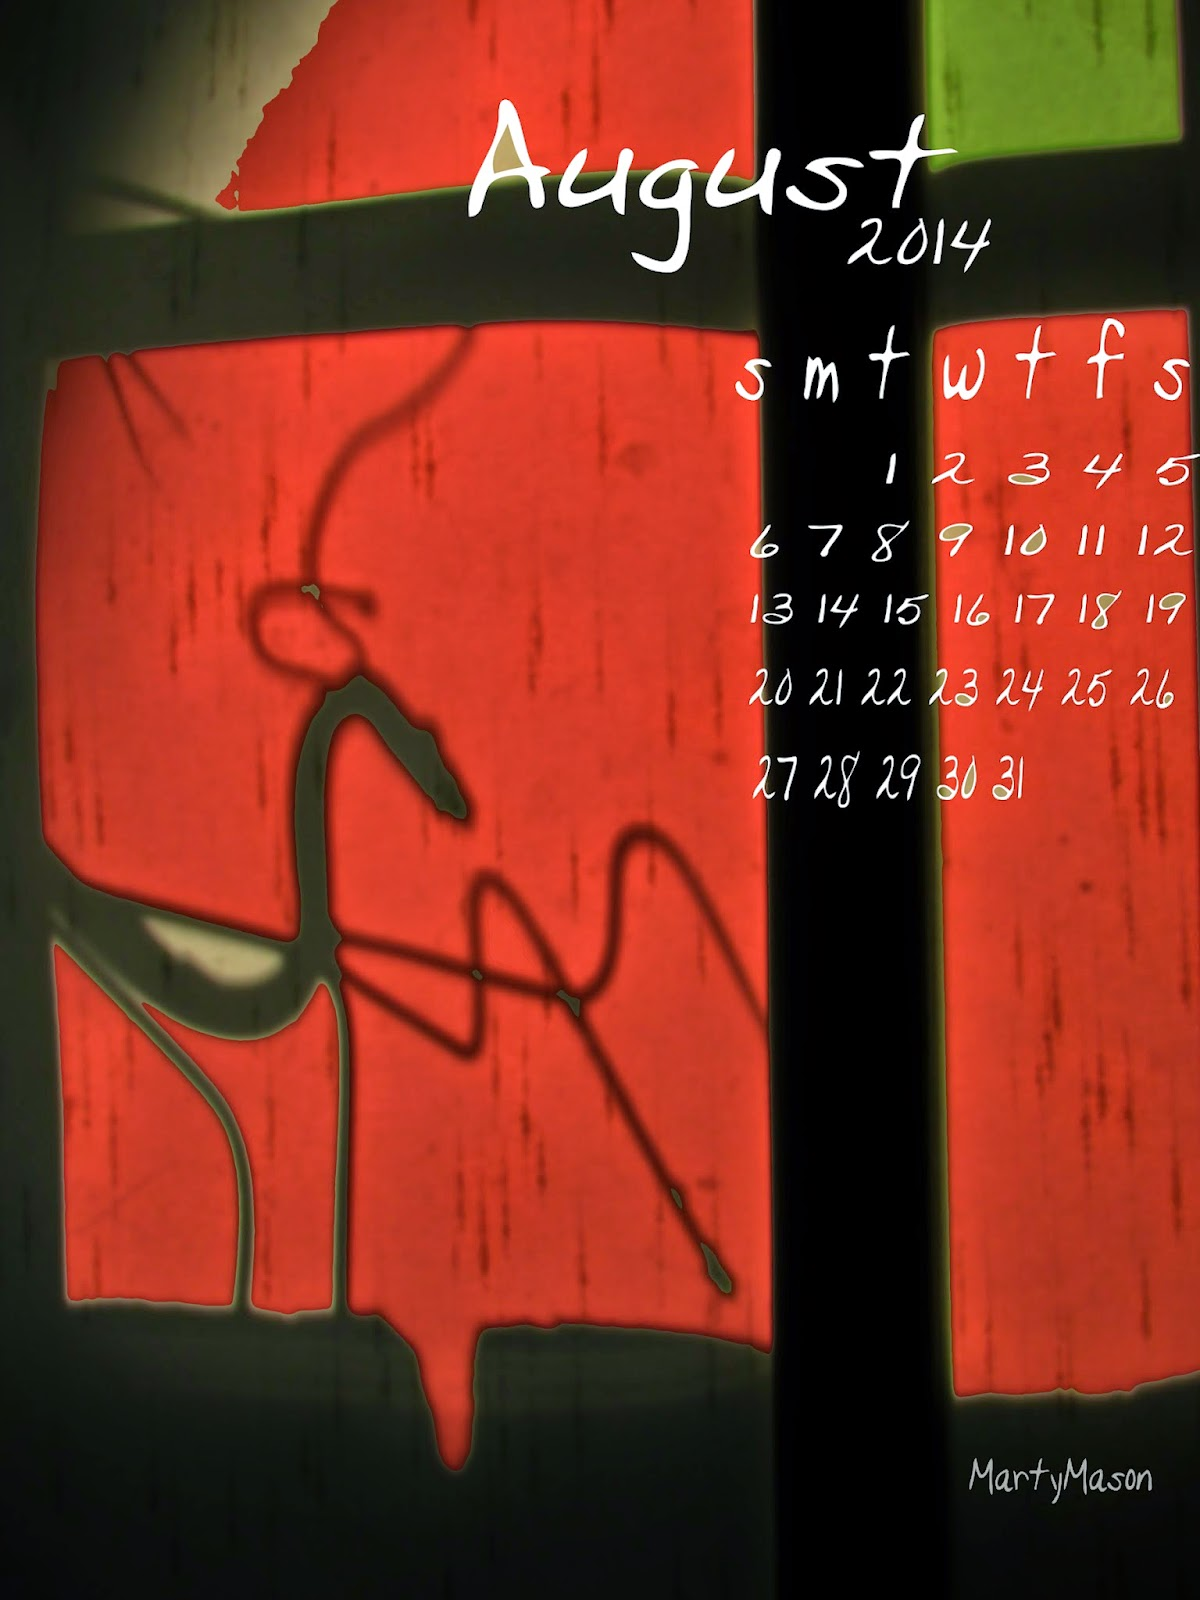 Praying Mantis, August, 2014, calendar....all by Marty Mason